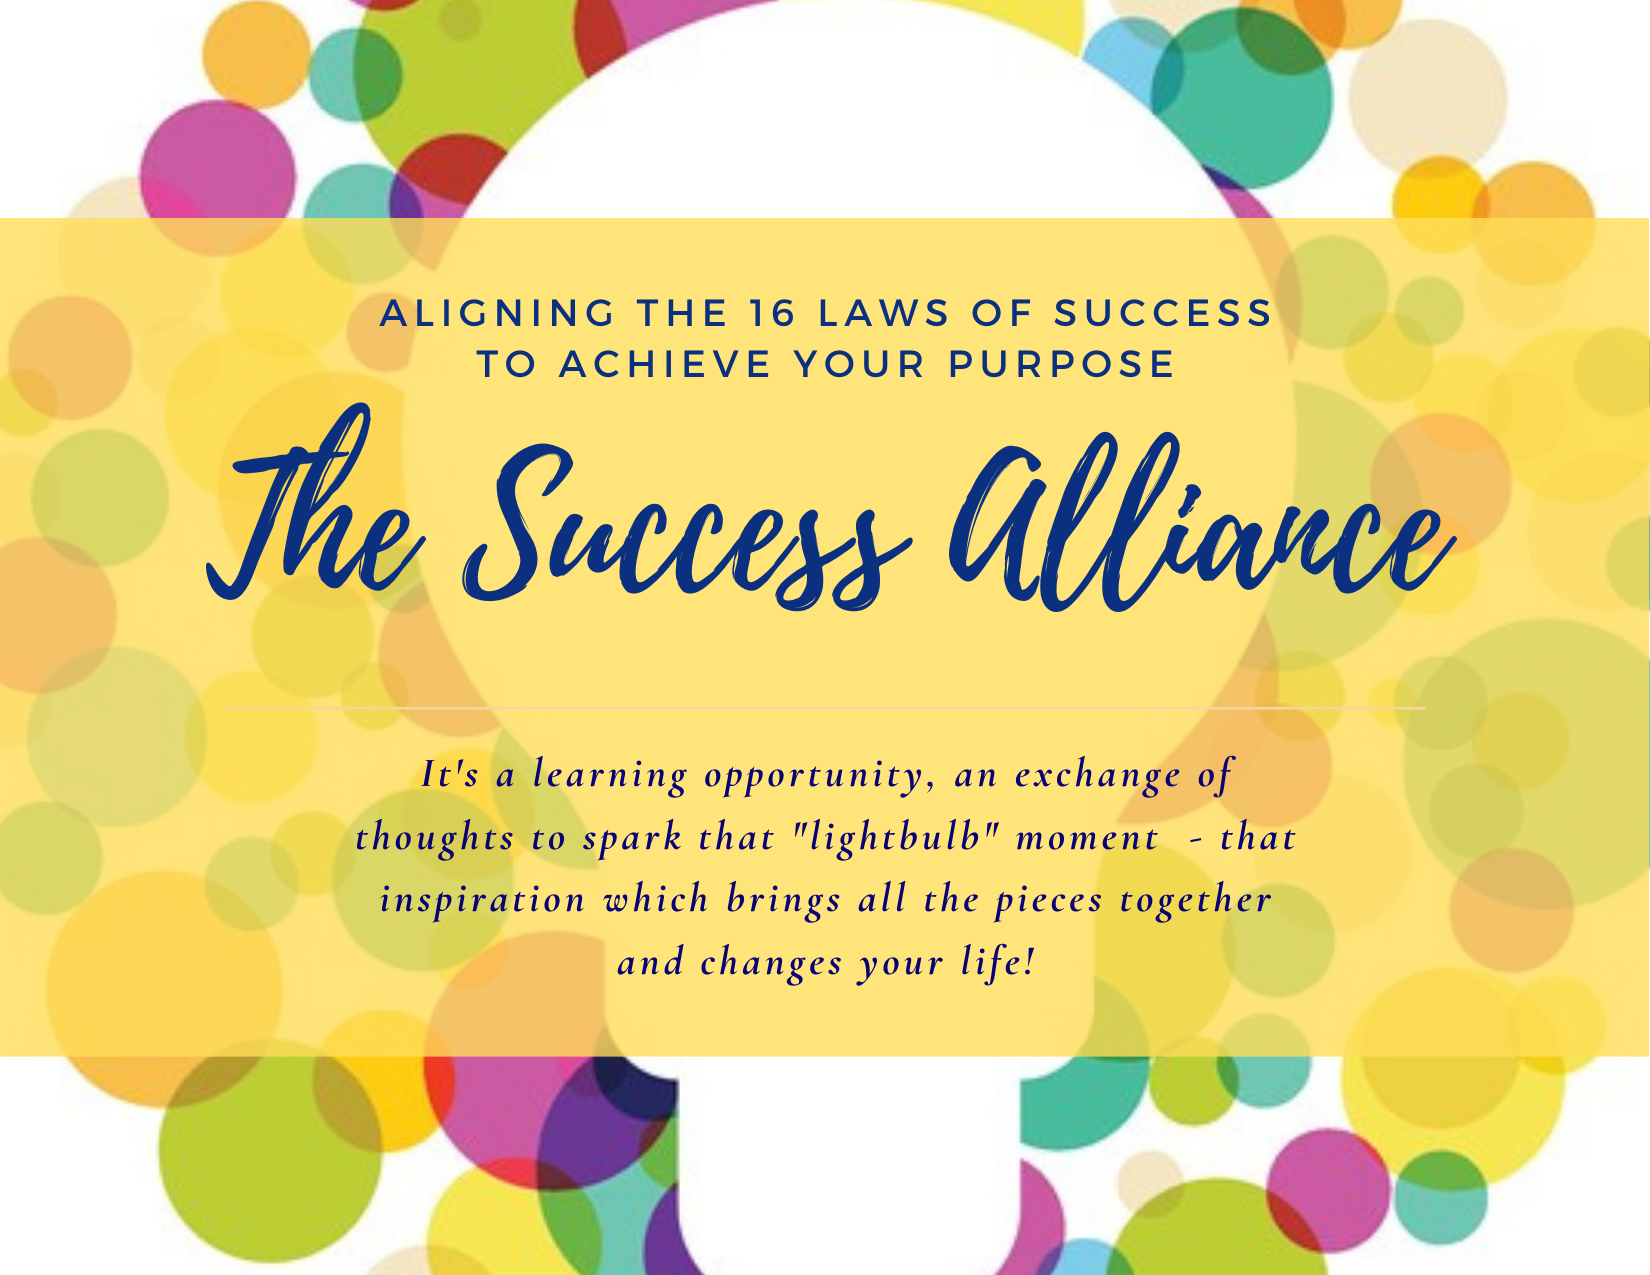 Success Alliance